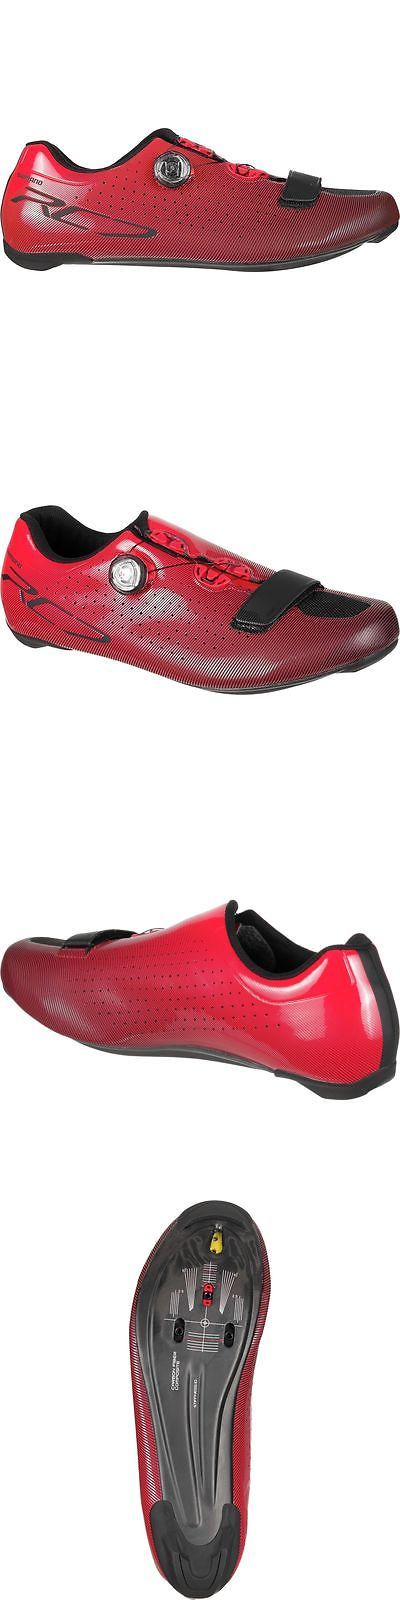 Men 158986: Shimano Sh-Rc7 Limited Edition Cycling Shoe - Men S -> BUY IT NOW ONLY: $149.96 on eBay!